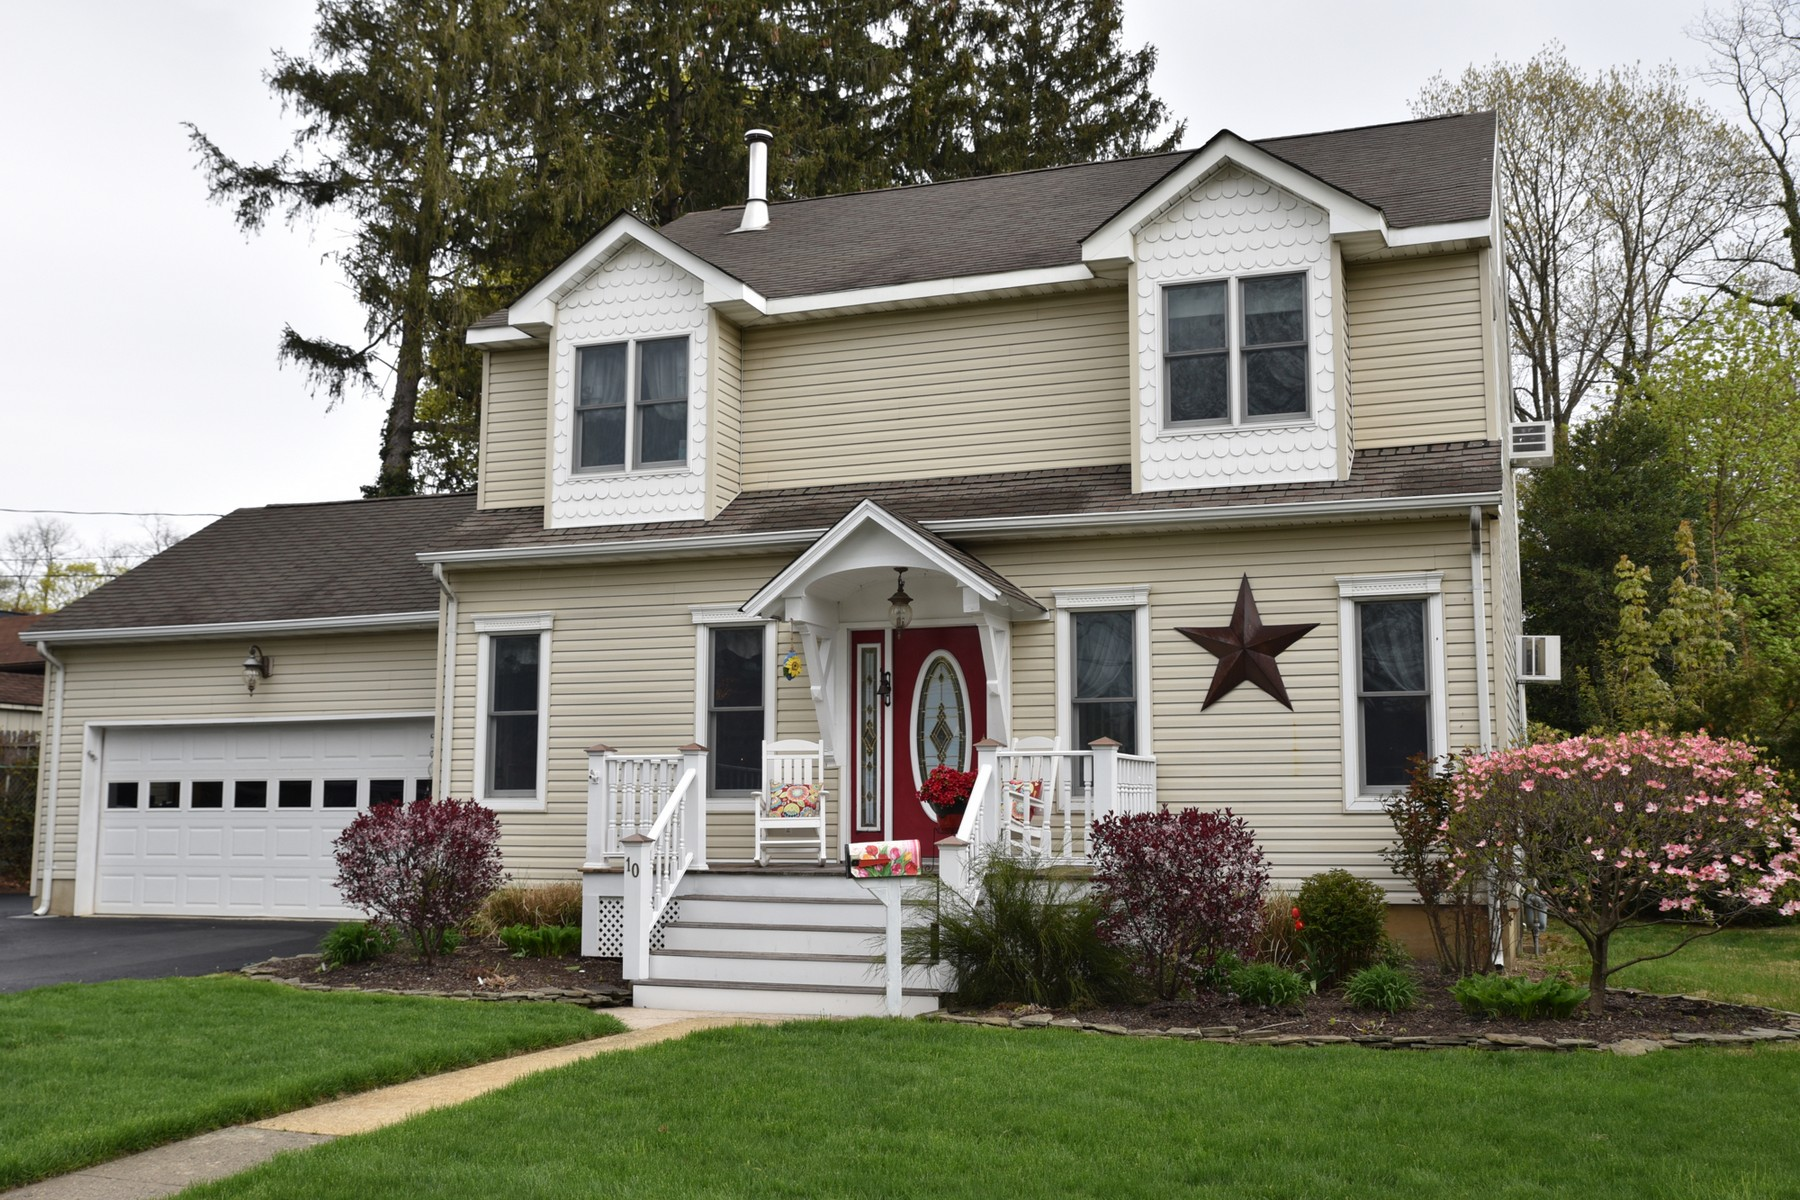 Single Family Home for Sale at Exception to the Usual 10 Walnut Avenue Red Bank, New Jersey, 07701 United States